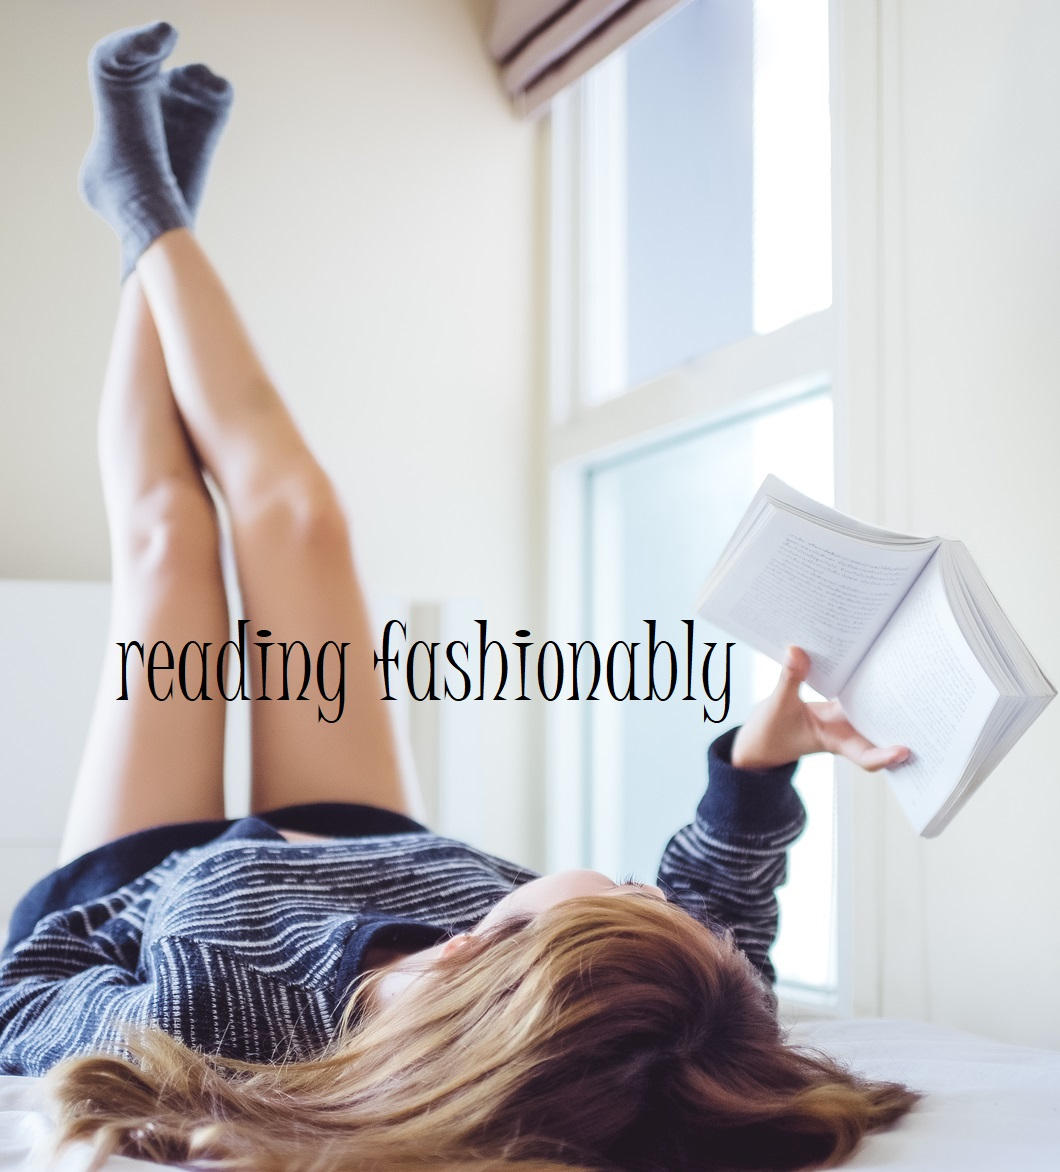 Reading Fashionably